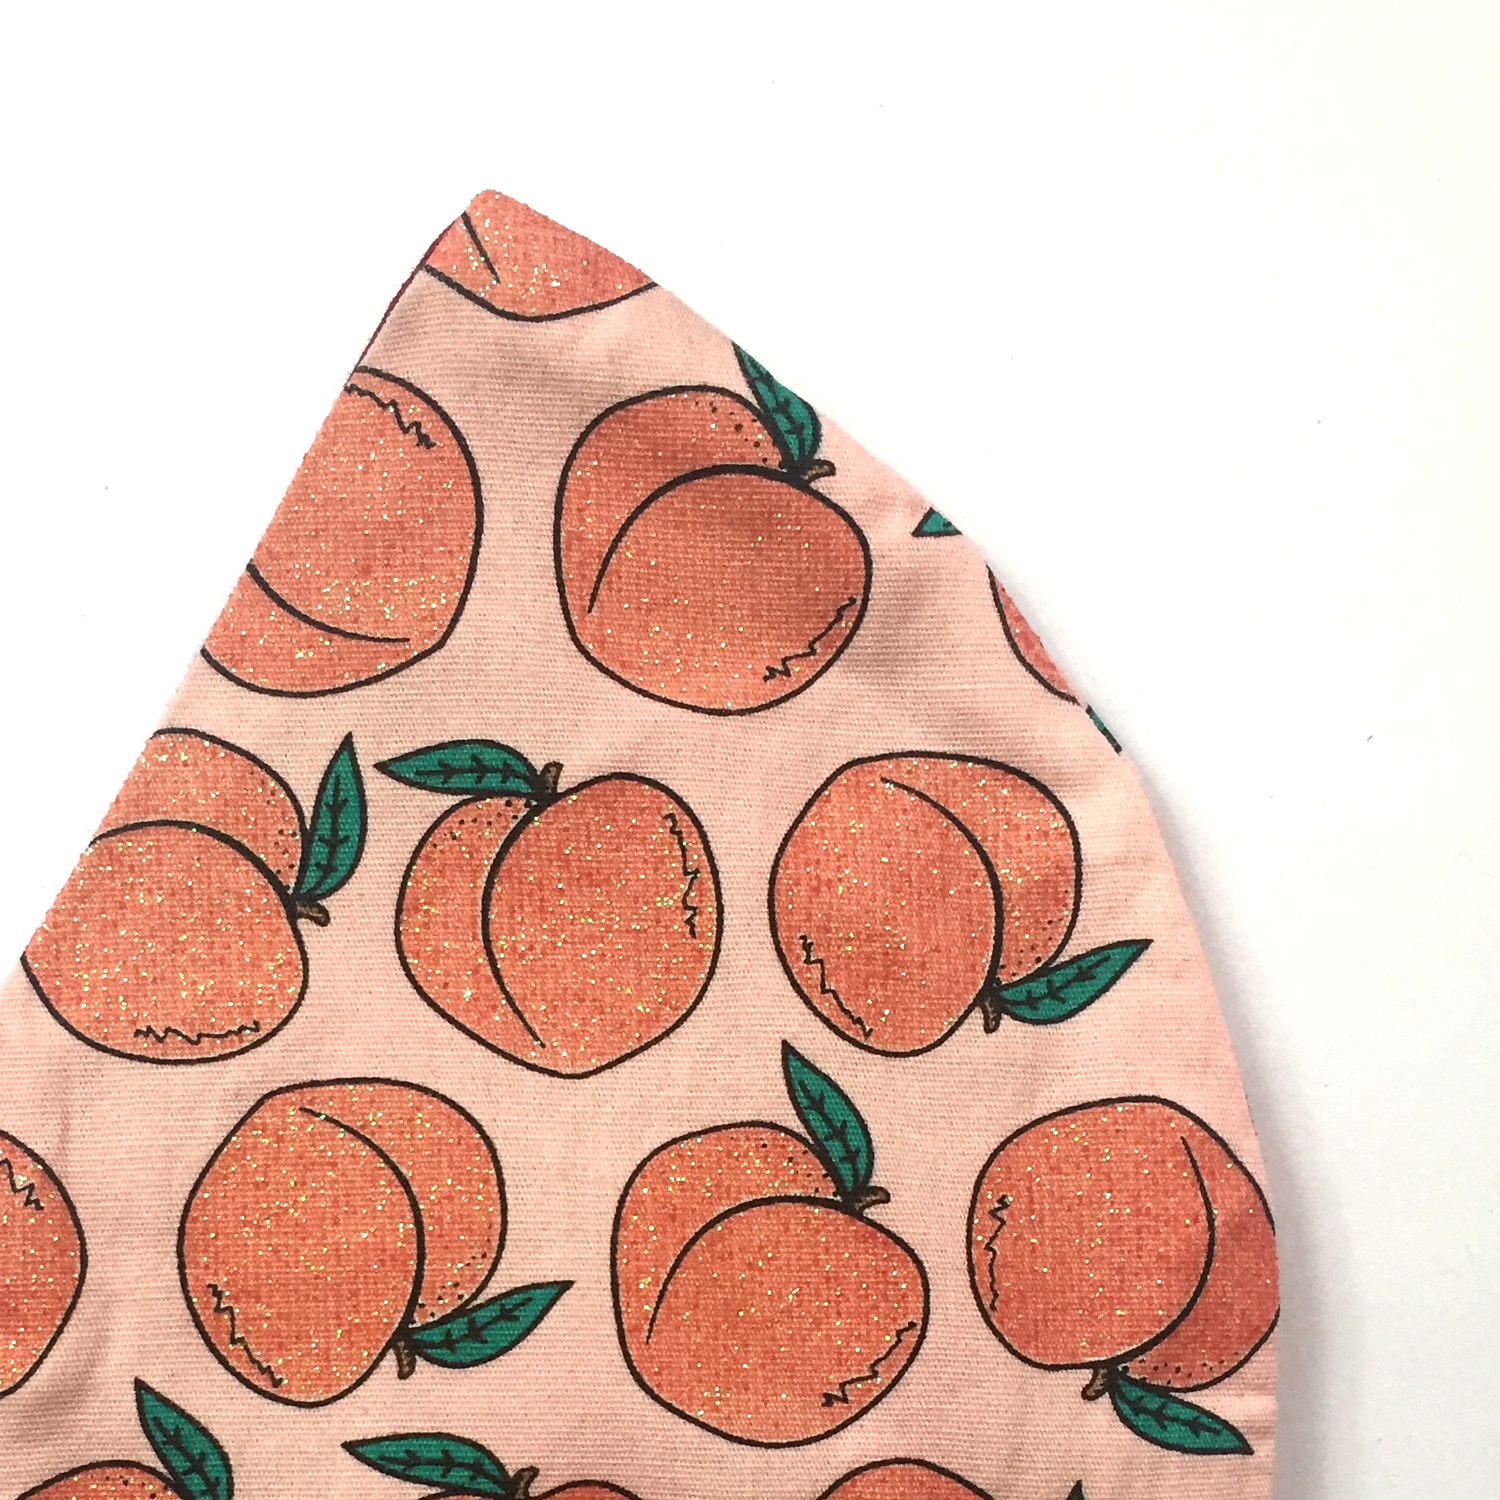 Triple layered face mask made in Melbourne Australia from cotton and poplin featuring a unique sparkly peach emoji emoticon print